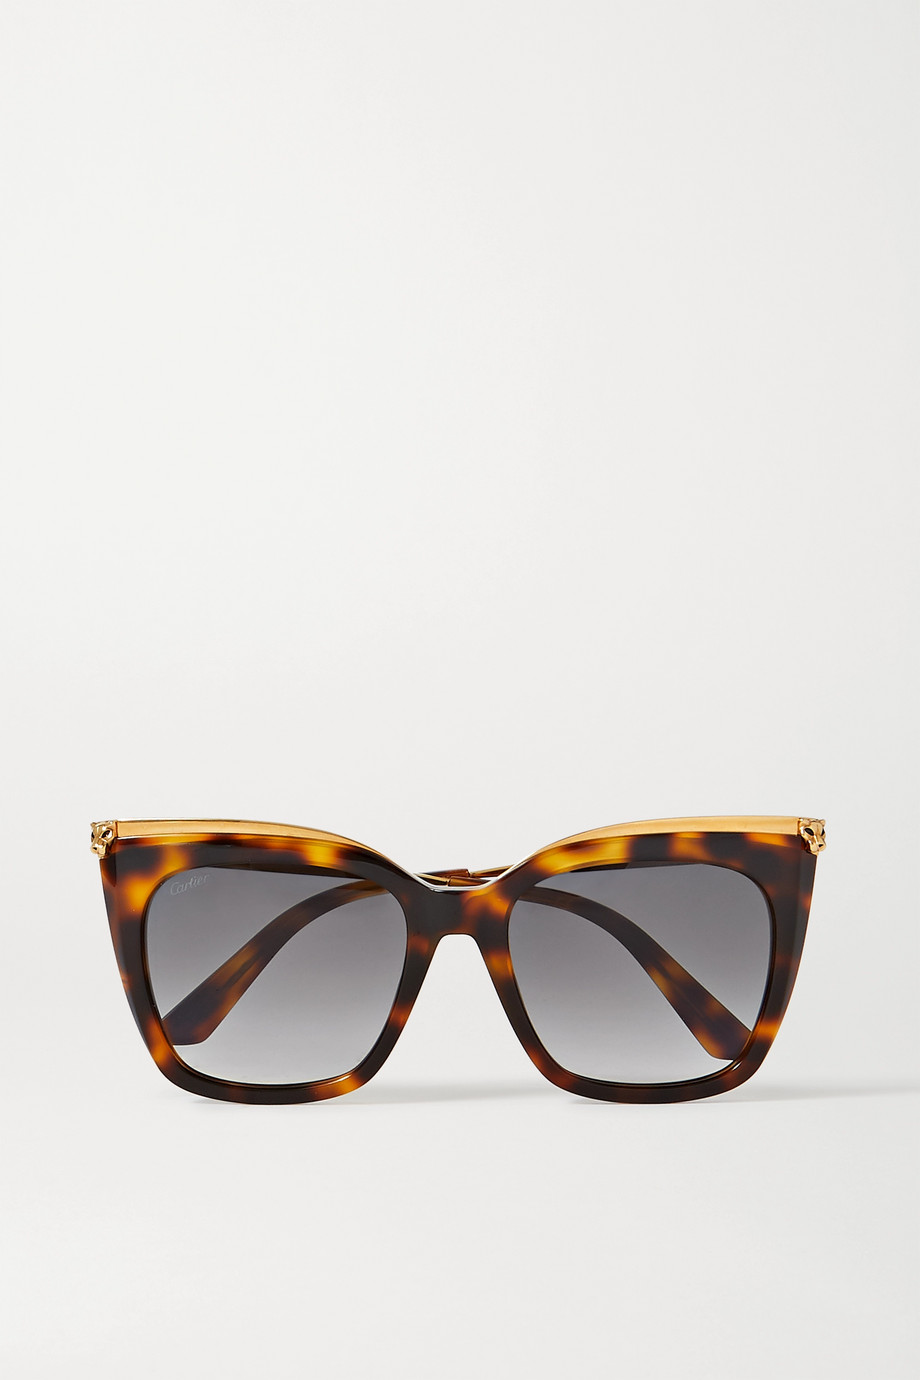 Cartier Eyewear Cat-eye gold-tone and tortoiseshell acetate sunglasses